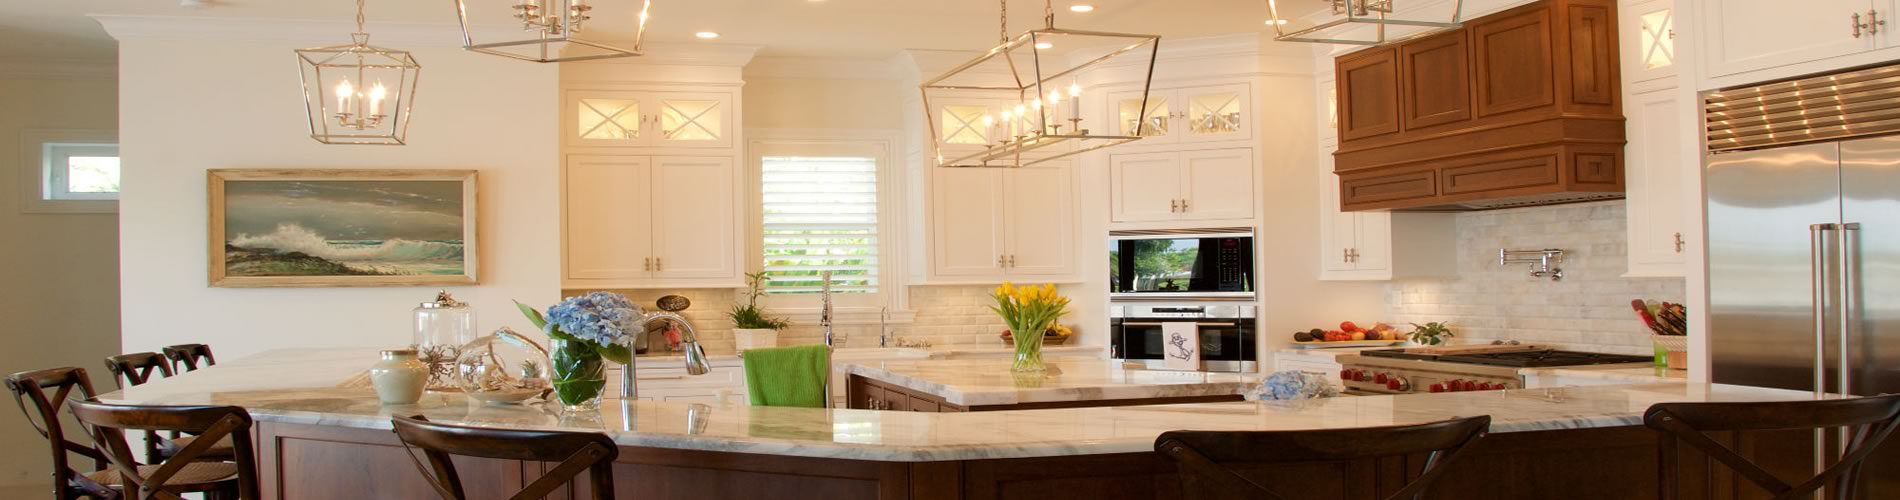 Kitchen Remodeling Cabinetry